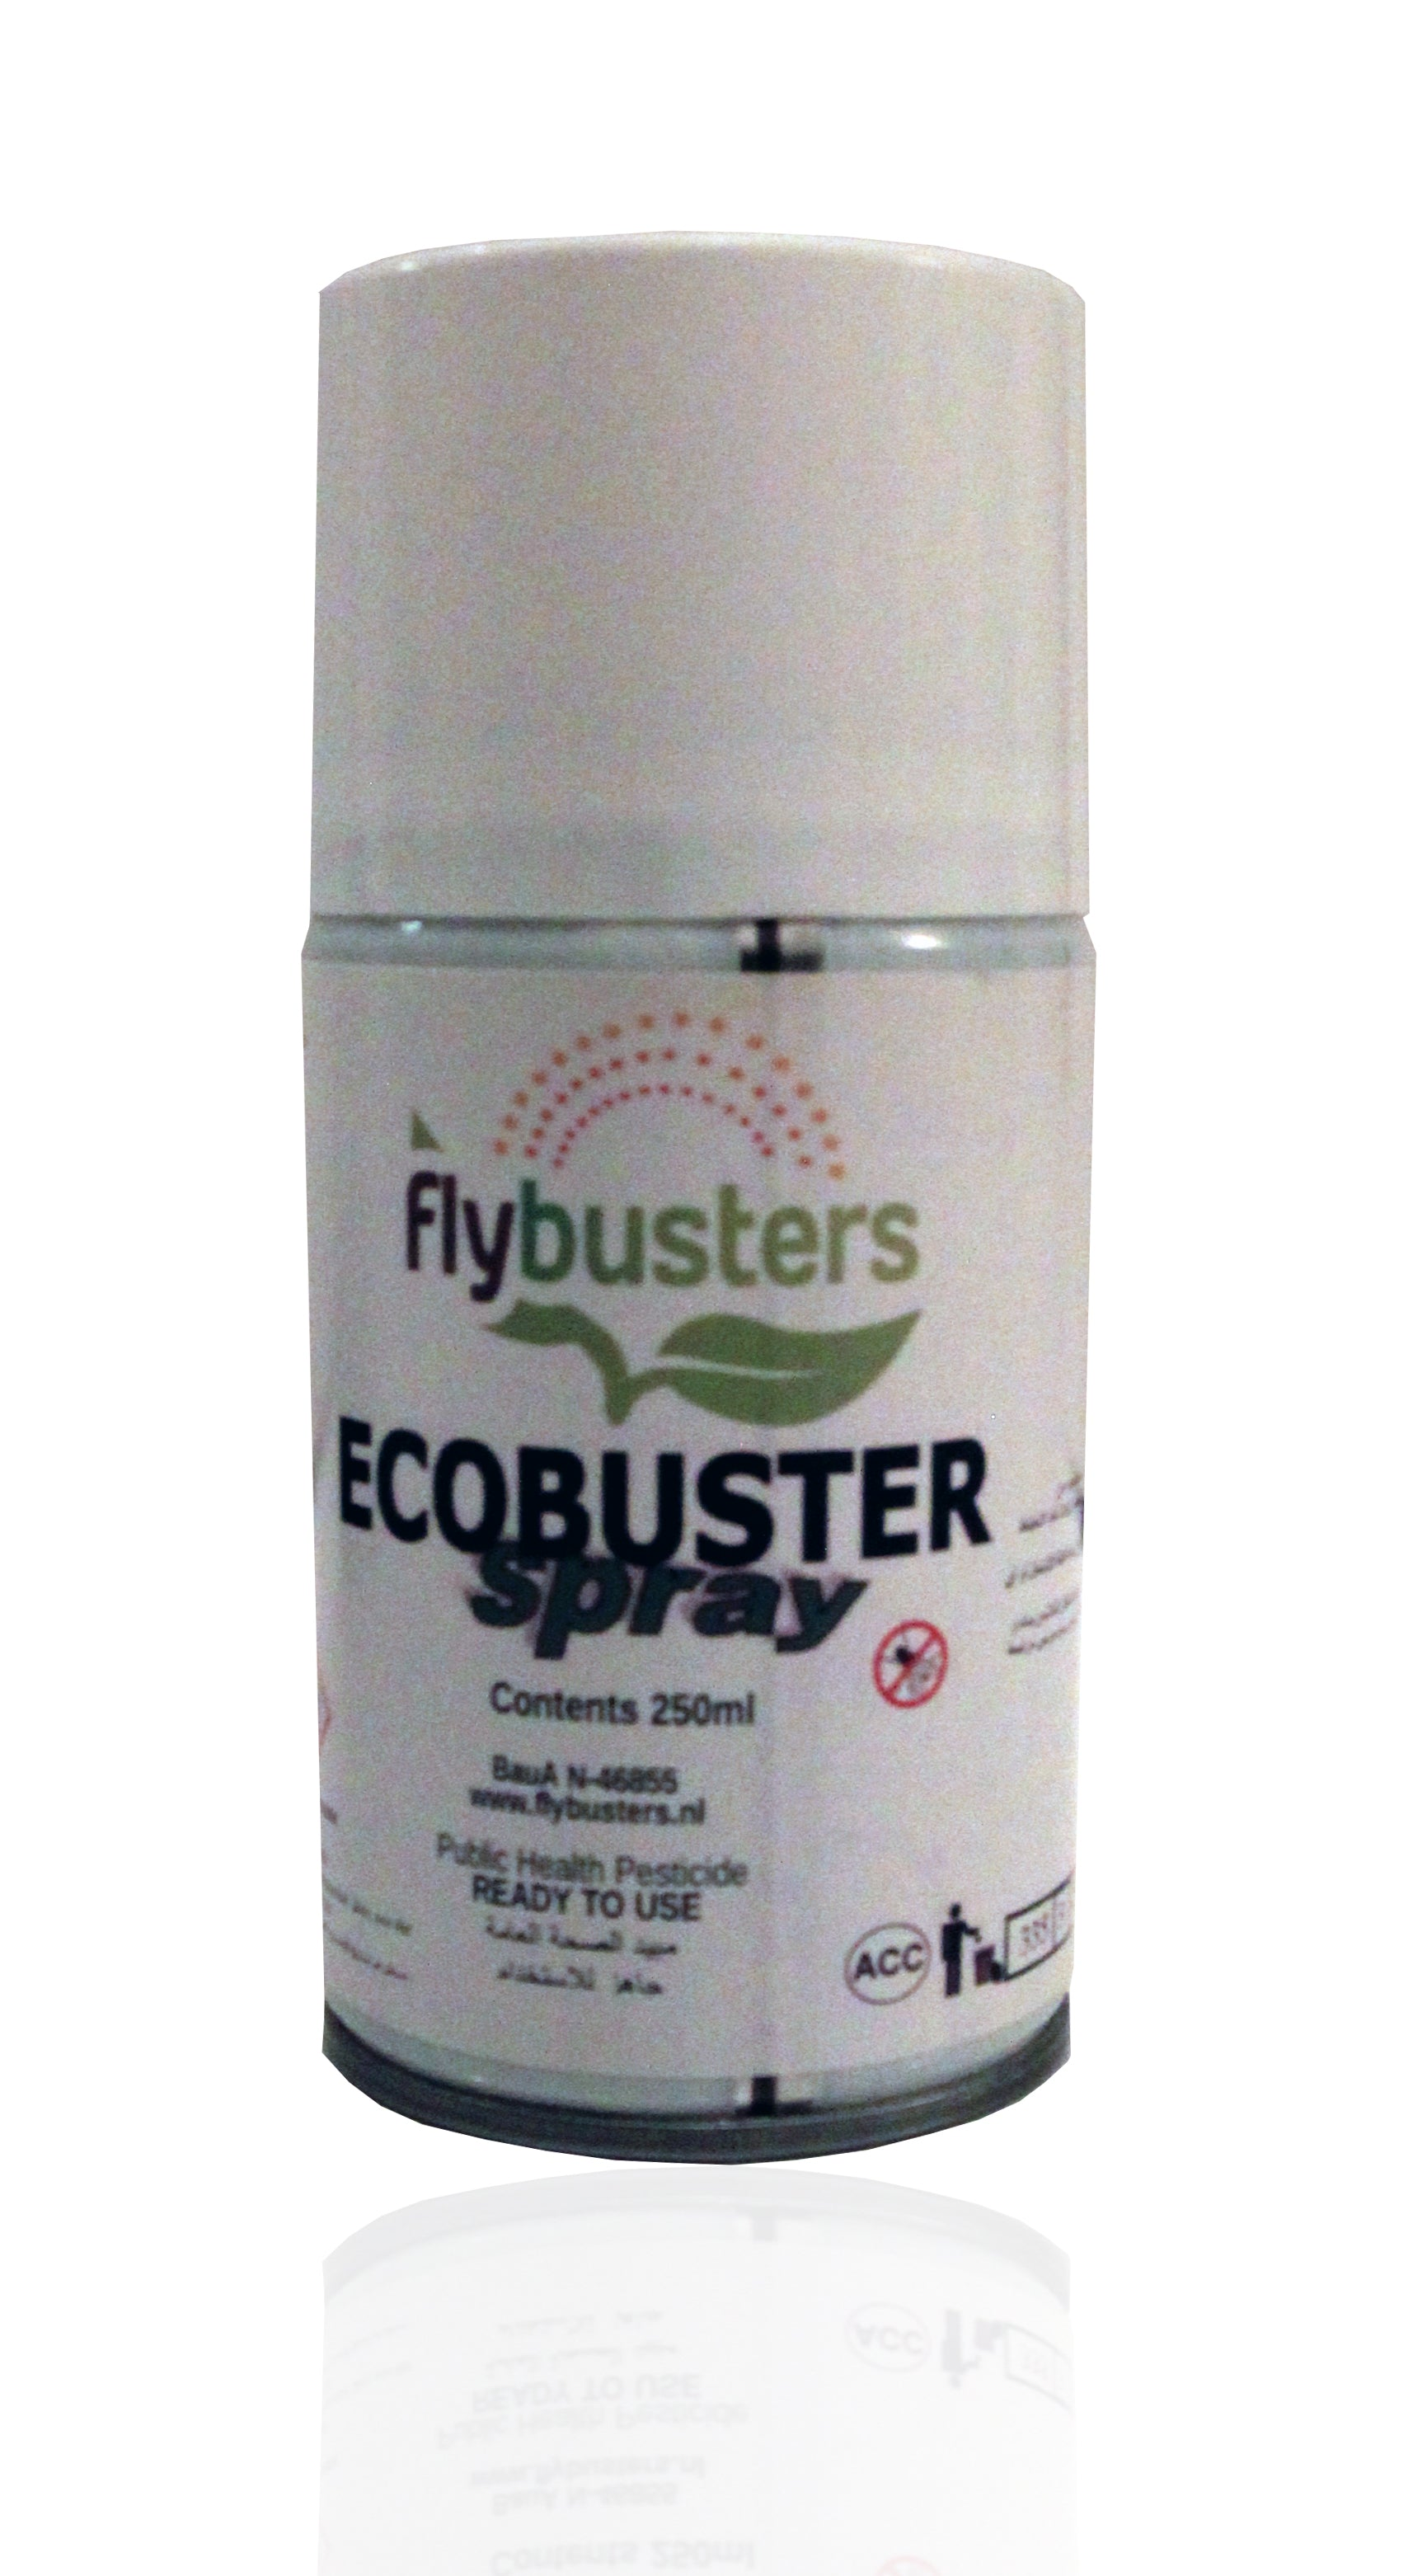 Flybusters Ecobuster Basic Full Set